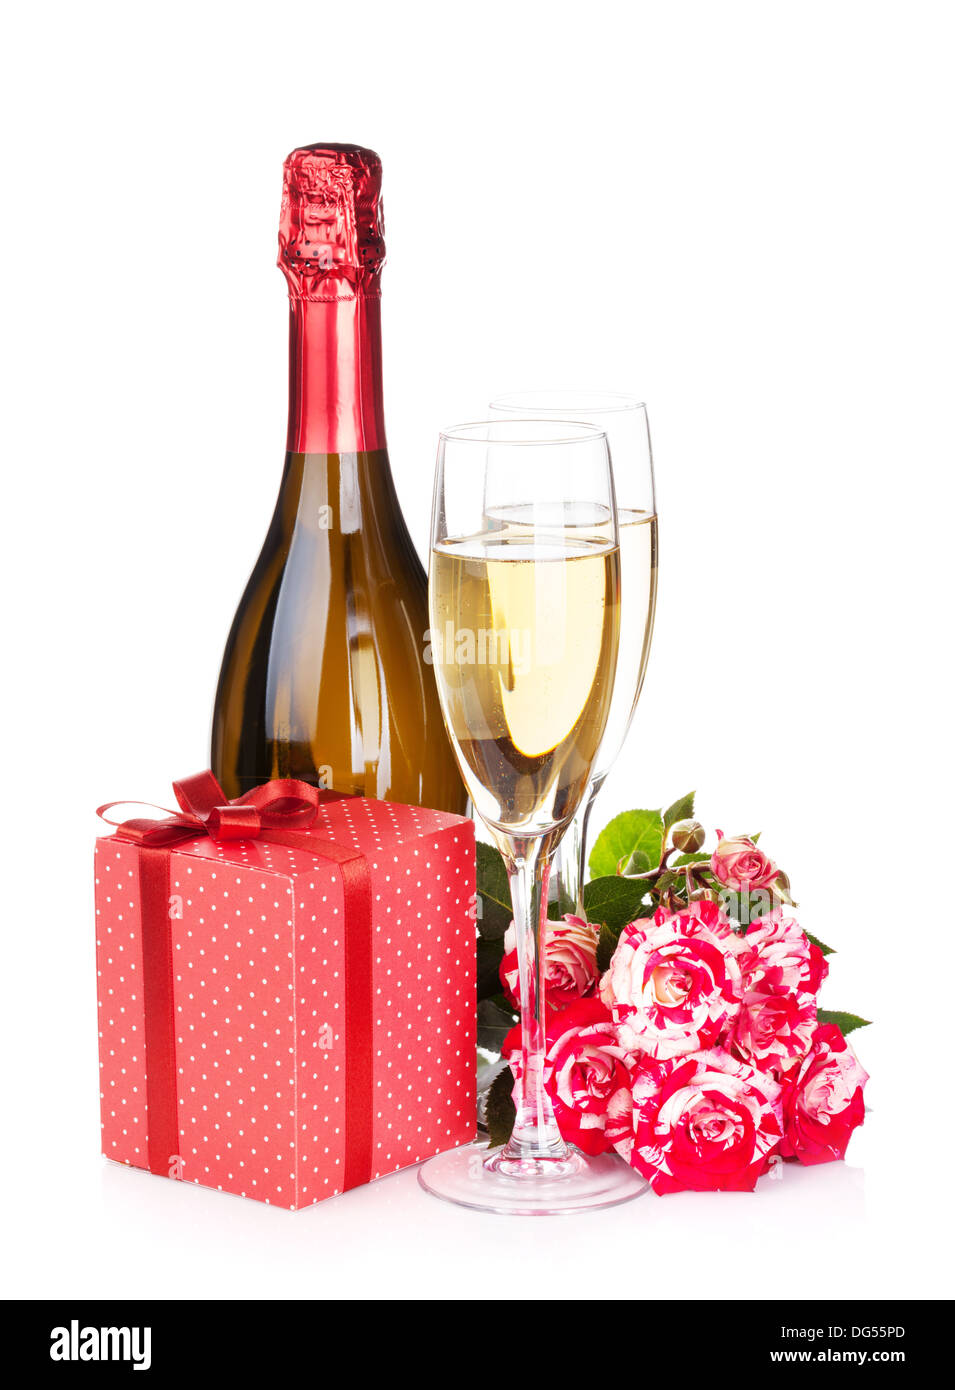 Champagne Bottle Two Glasses Gift Box And Red Rose Flowers Stock